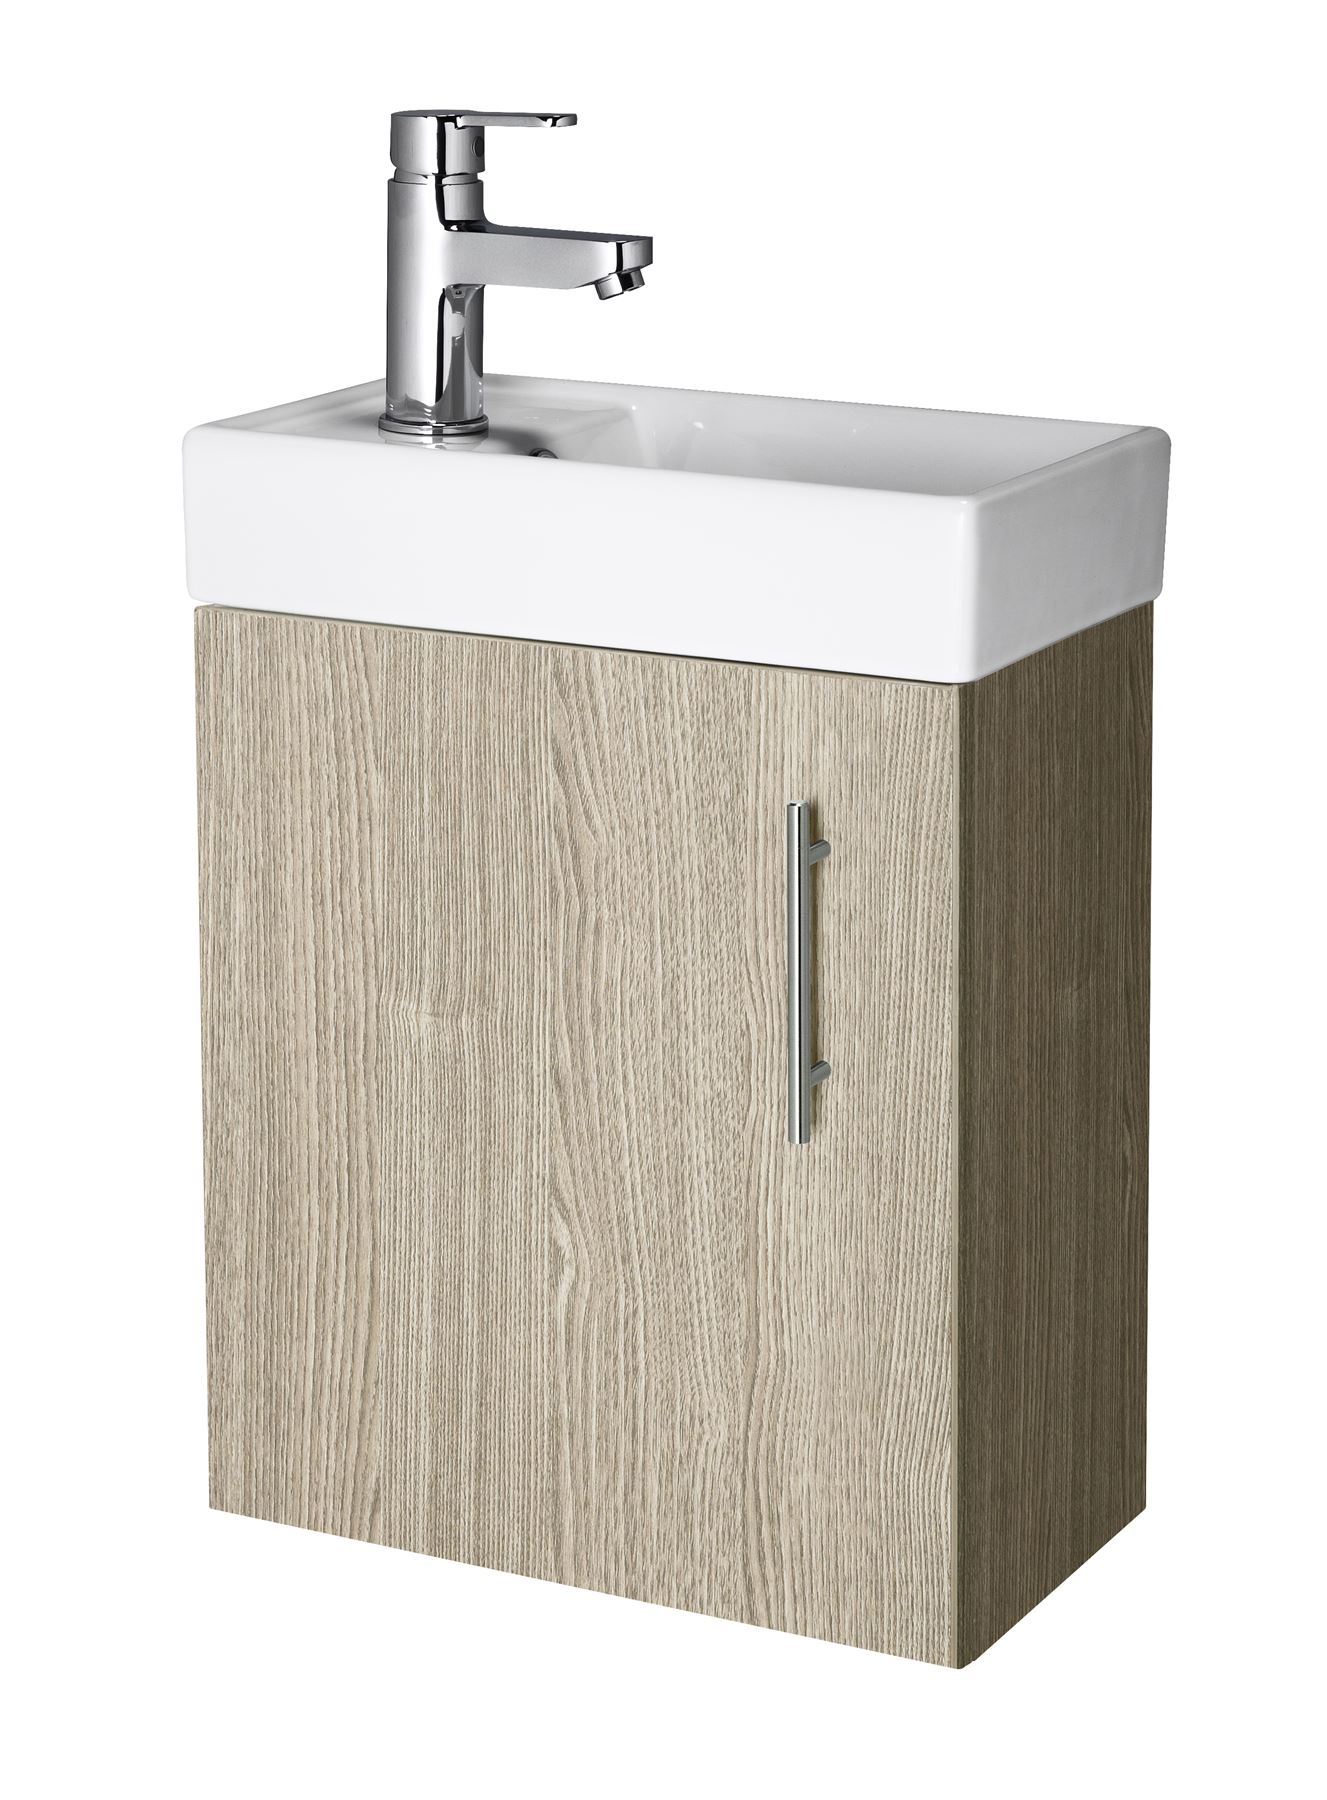 Wall Hung Cloakroom Basin Unit : ... Bathroom Cloakroom Vanity Unit & Basin Sink Floor & Wall Hung eBay